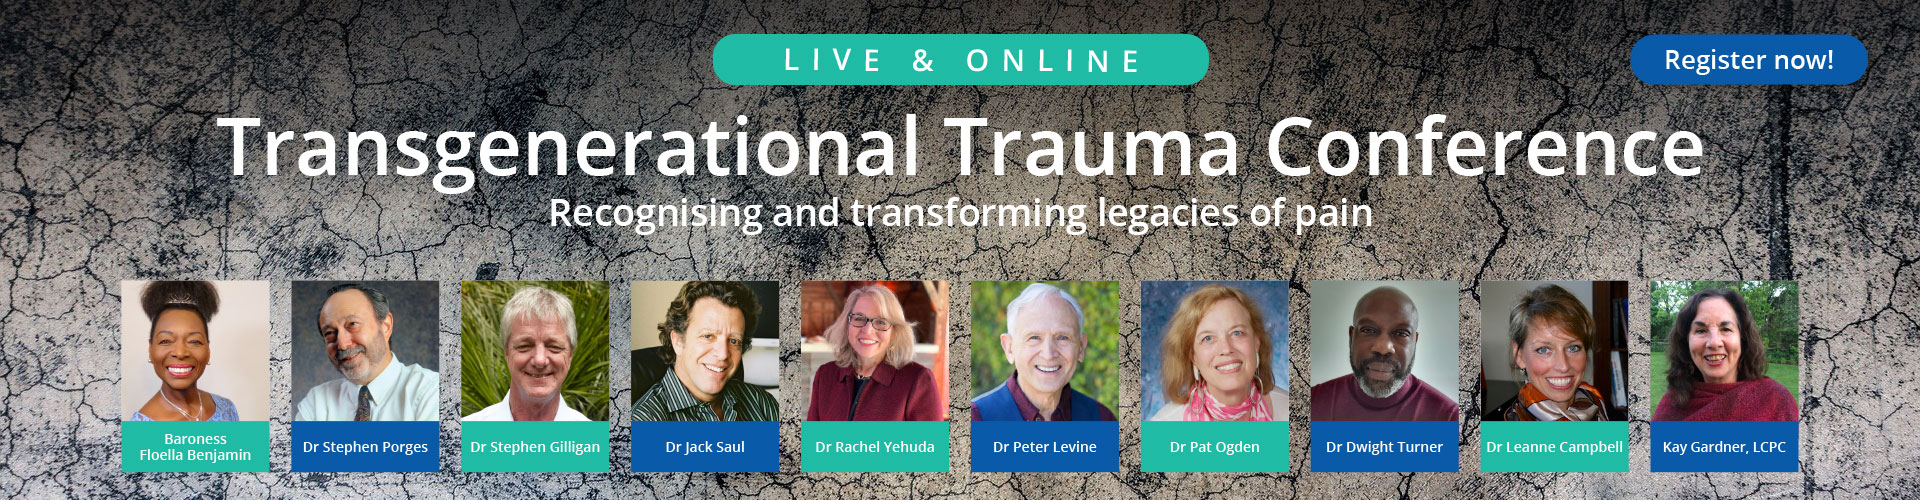 Transgenerational Trauma Conference: Recognising and transforming legacies of pain